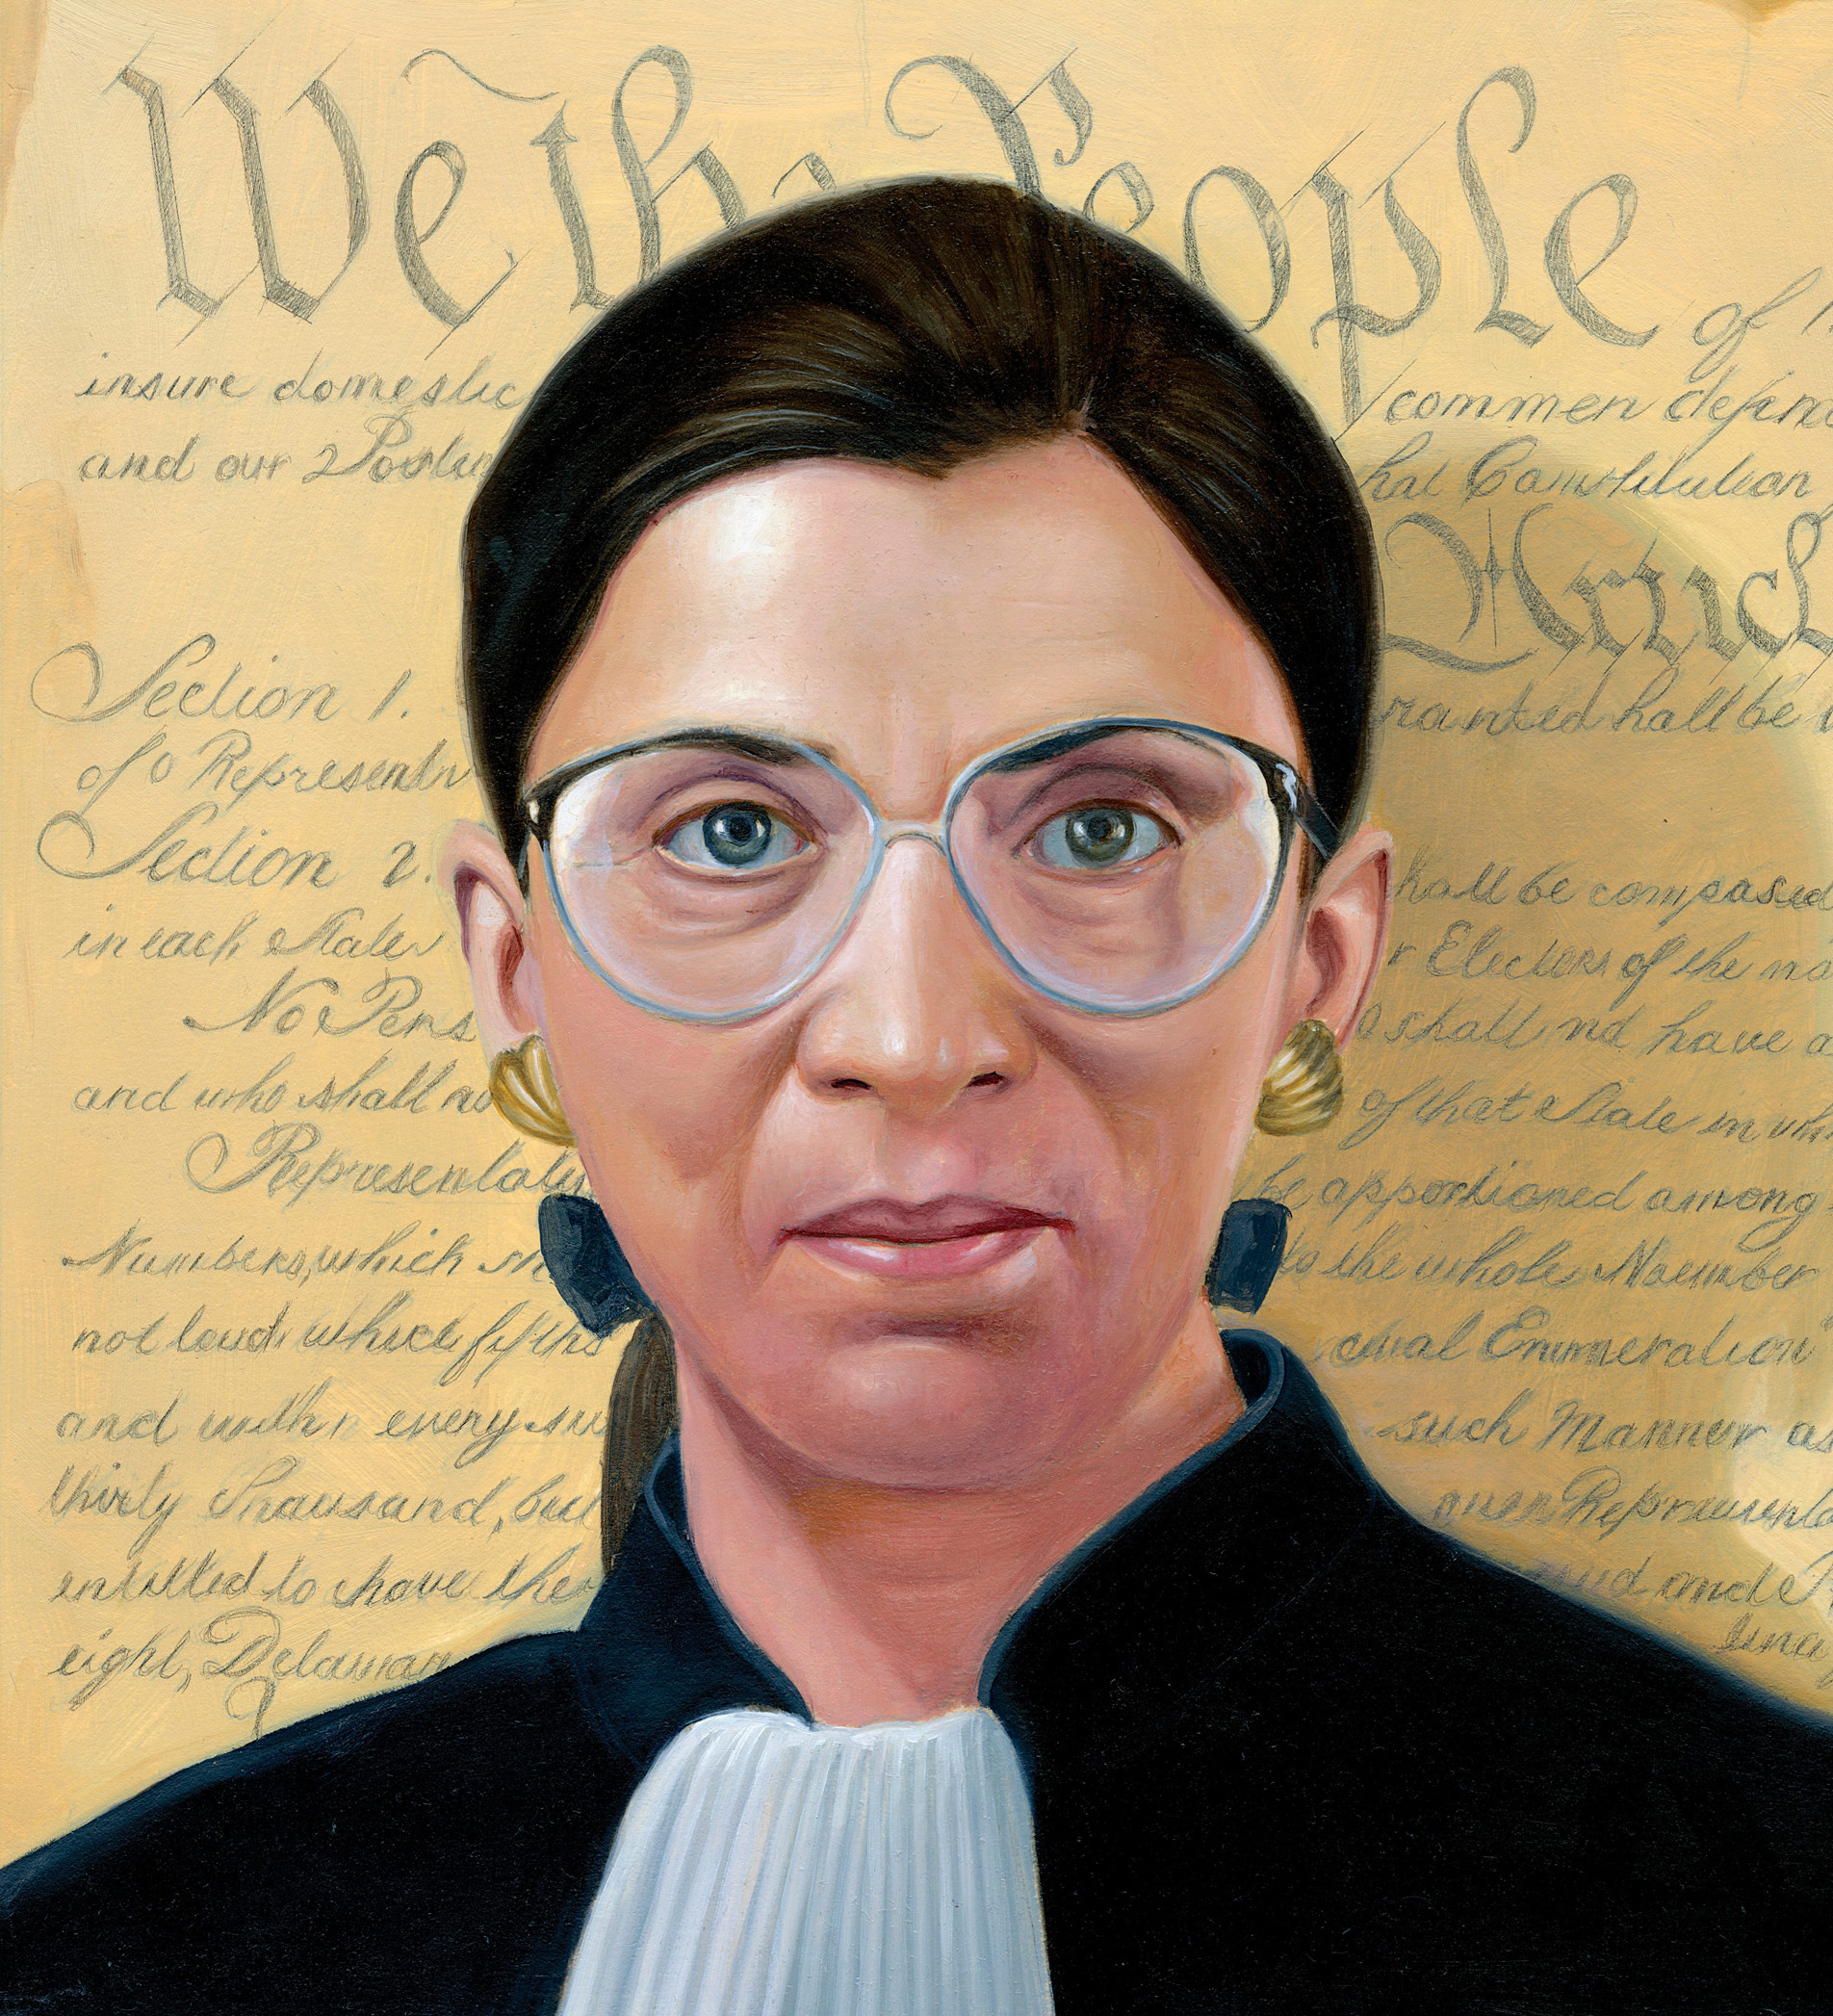 Ruth Objects [electronic resource] : The Life of Ruth Bader Ginsburg